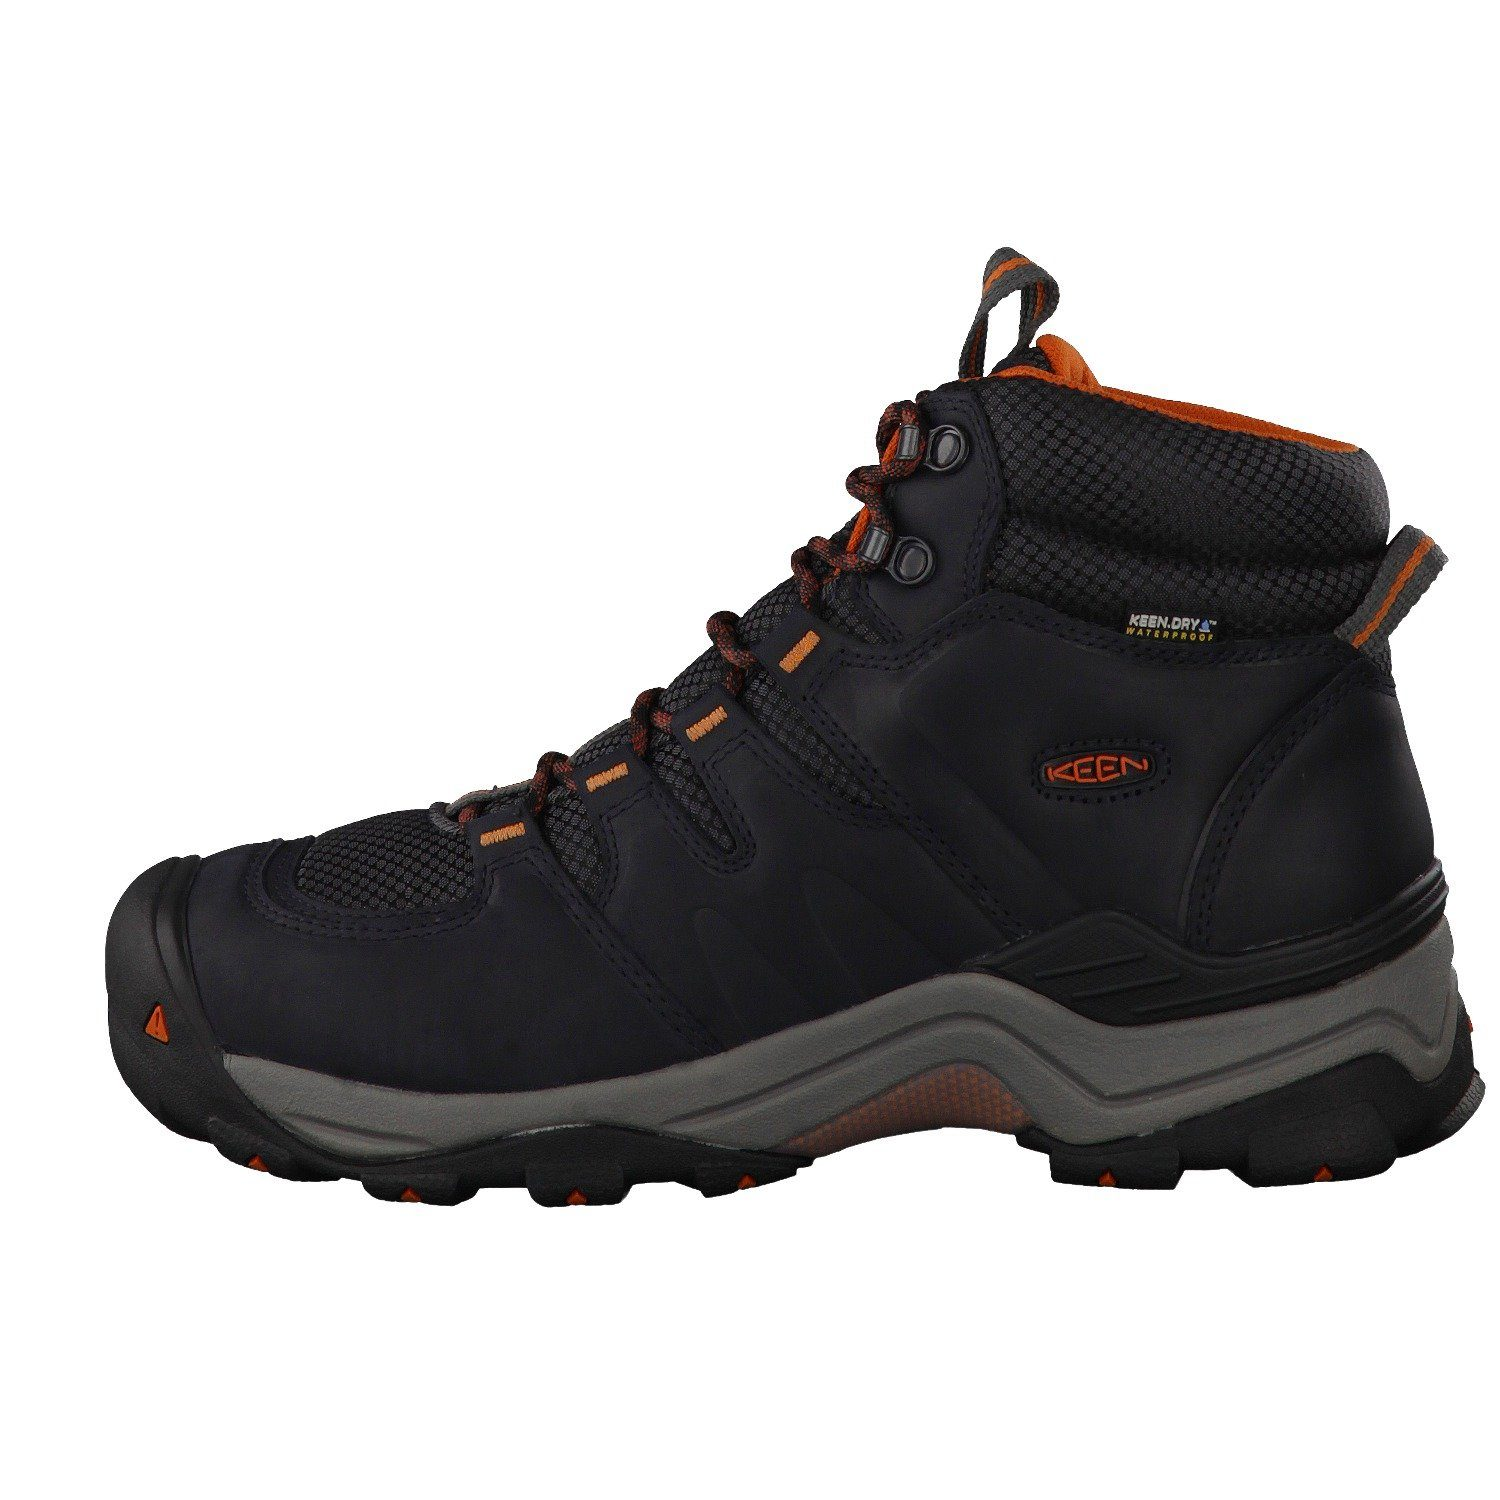 Keen Gypsum II MID WP 1015300 Outdoorschuh  black